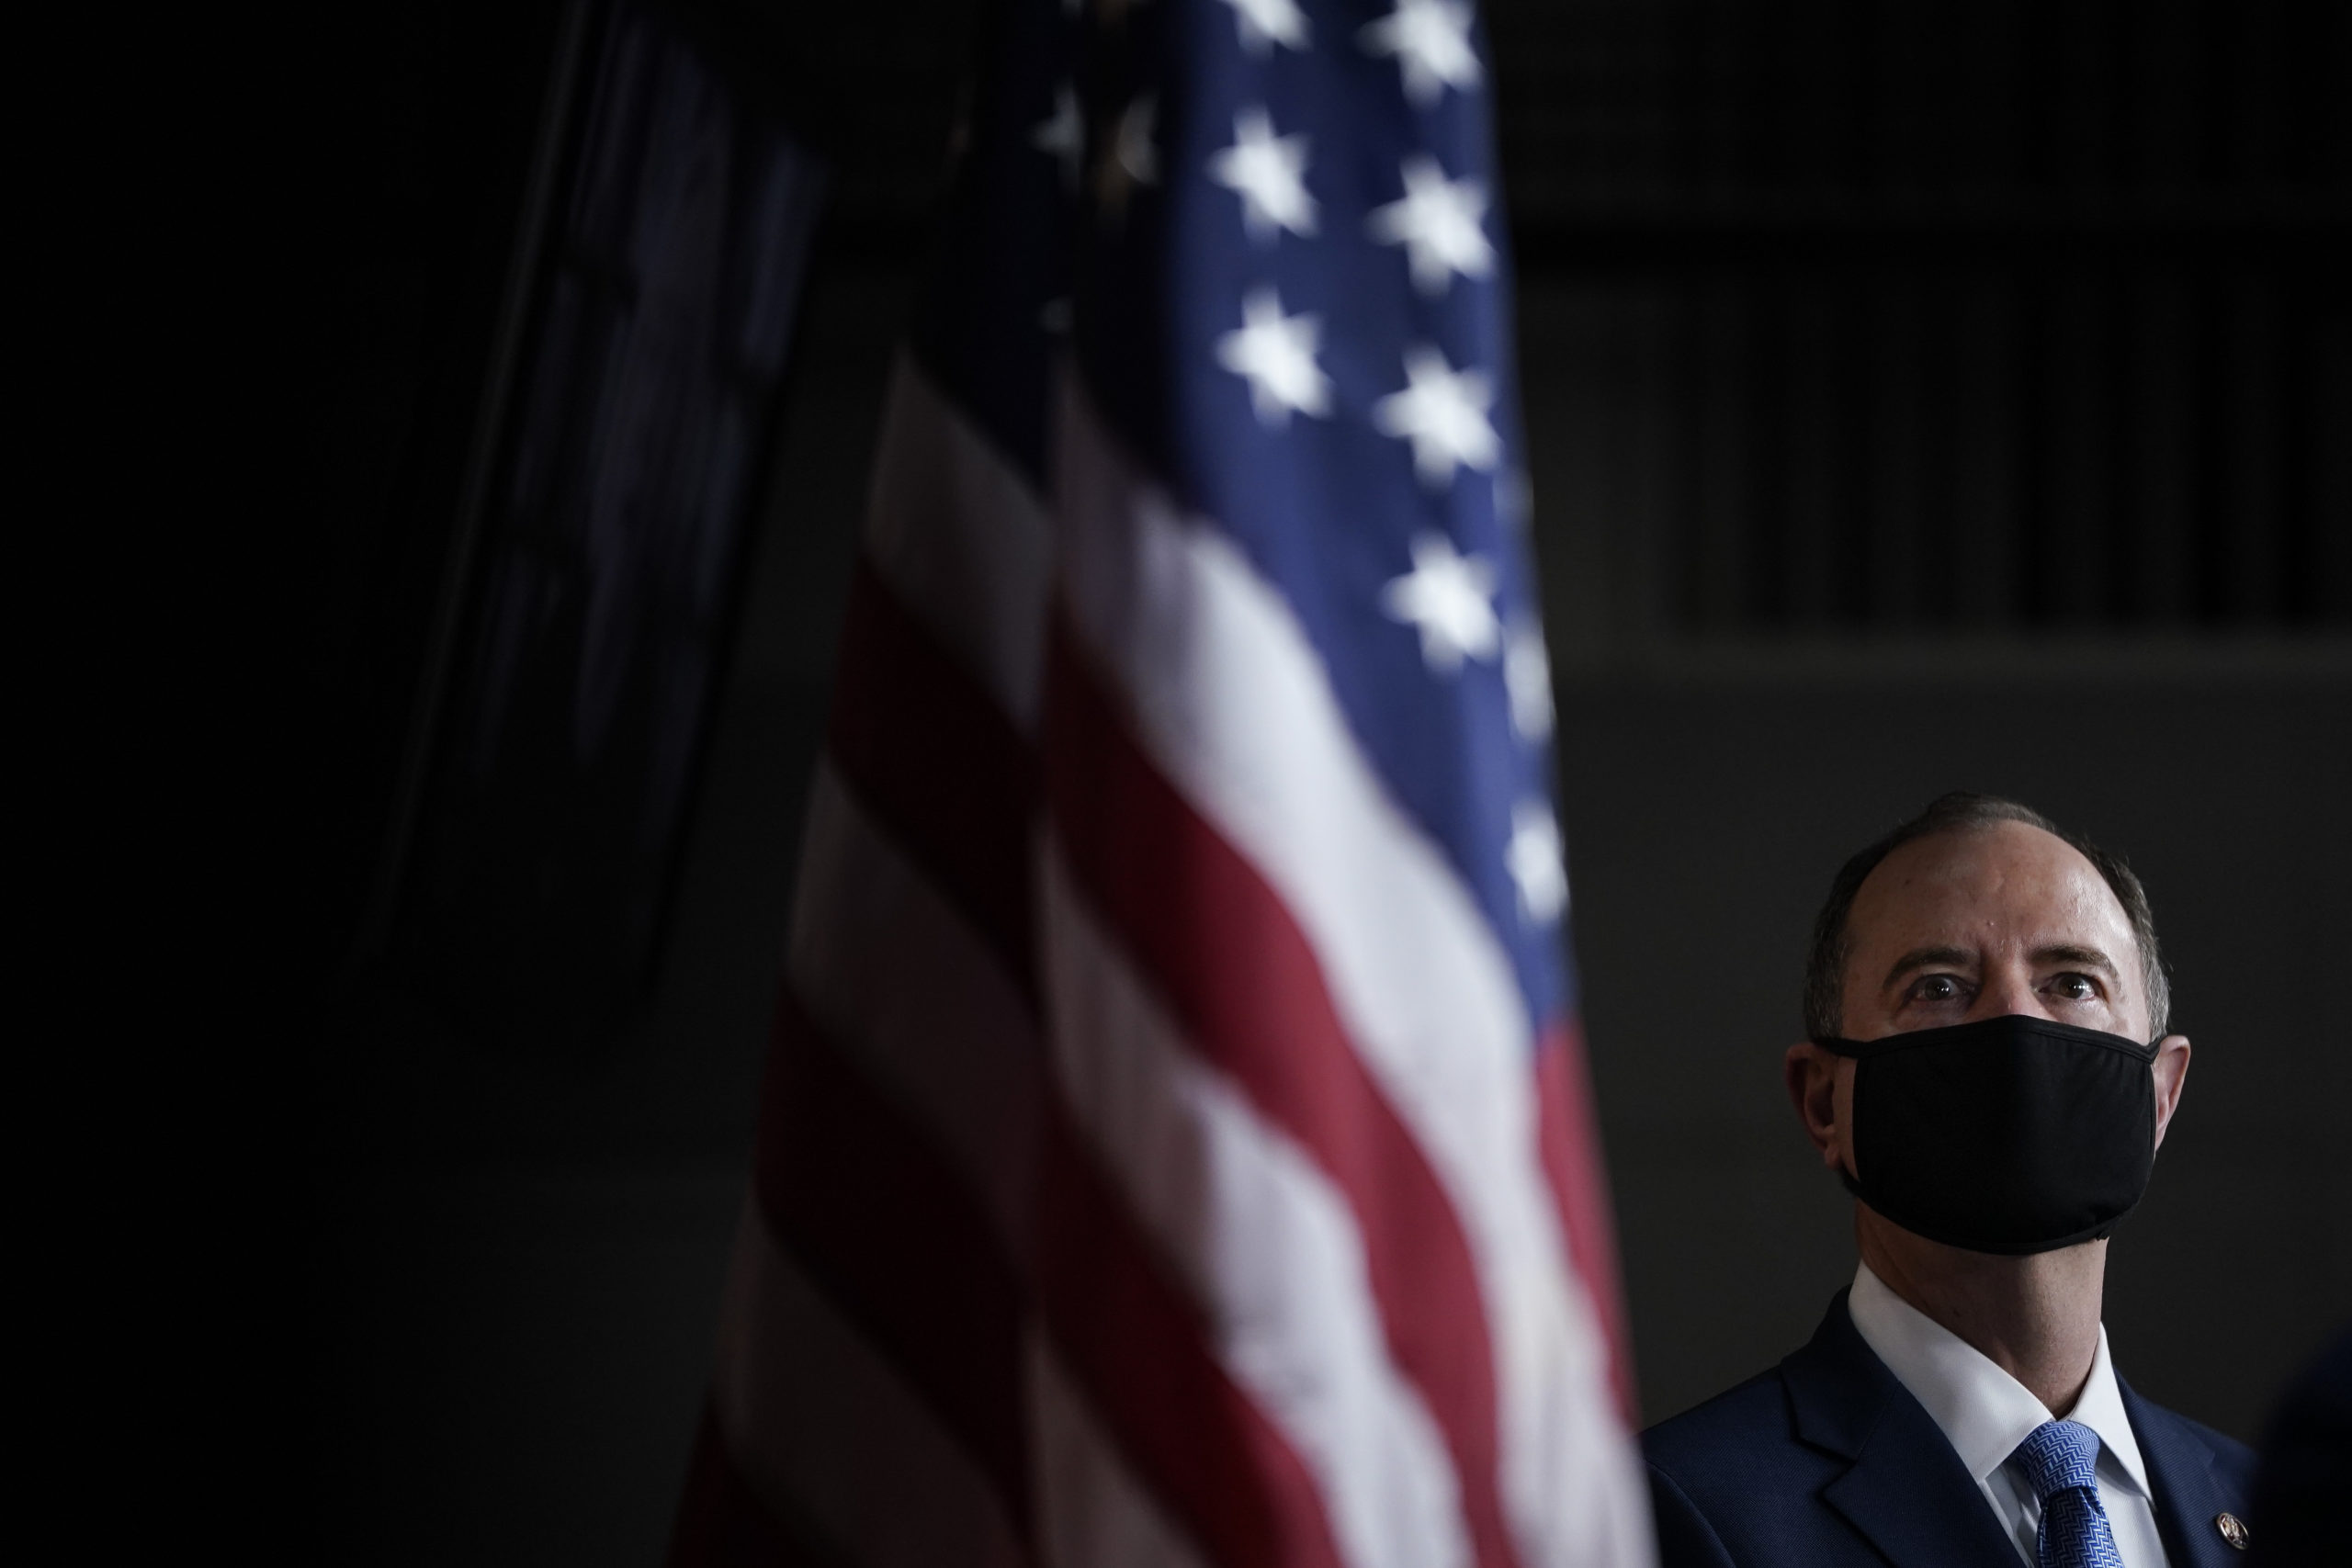 WASHINGTON, DC - SEPTEMBER 23: Rep. Adam Schiff (D-CA) attends a news conference at the U.S. Capitol on September 23, 2020 in Washington, DC. Speaker of the House Nancy Pelosi and fellow House Democrats introduced a package of sweeping reforms aimed at curbing presidential abuse of power. (Photo by Drew Angerer/Getty Images)